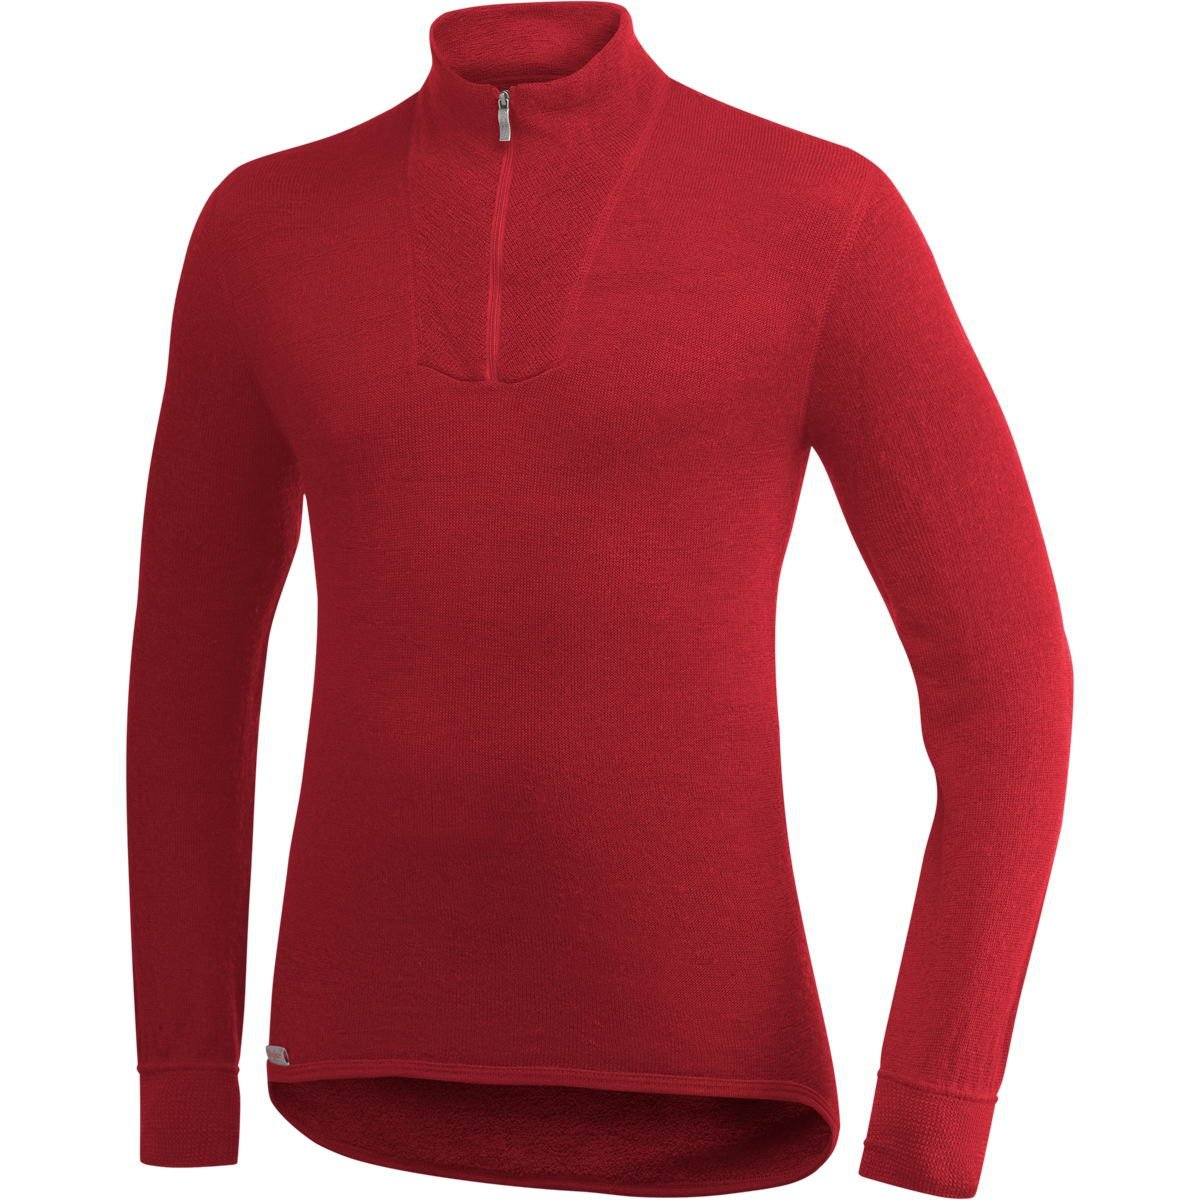 Woolpower Unisex Zip Turtleneck 200 RED L